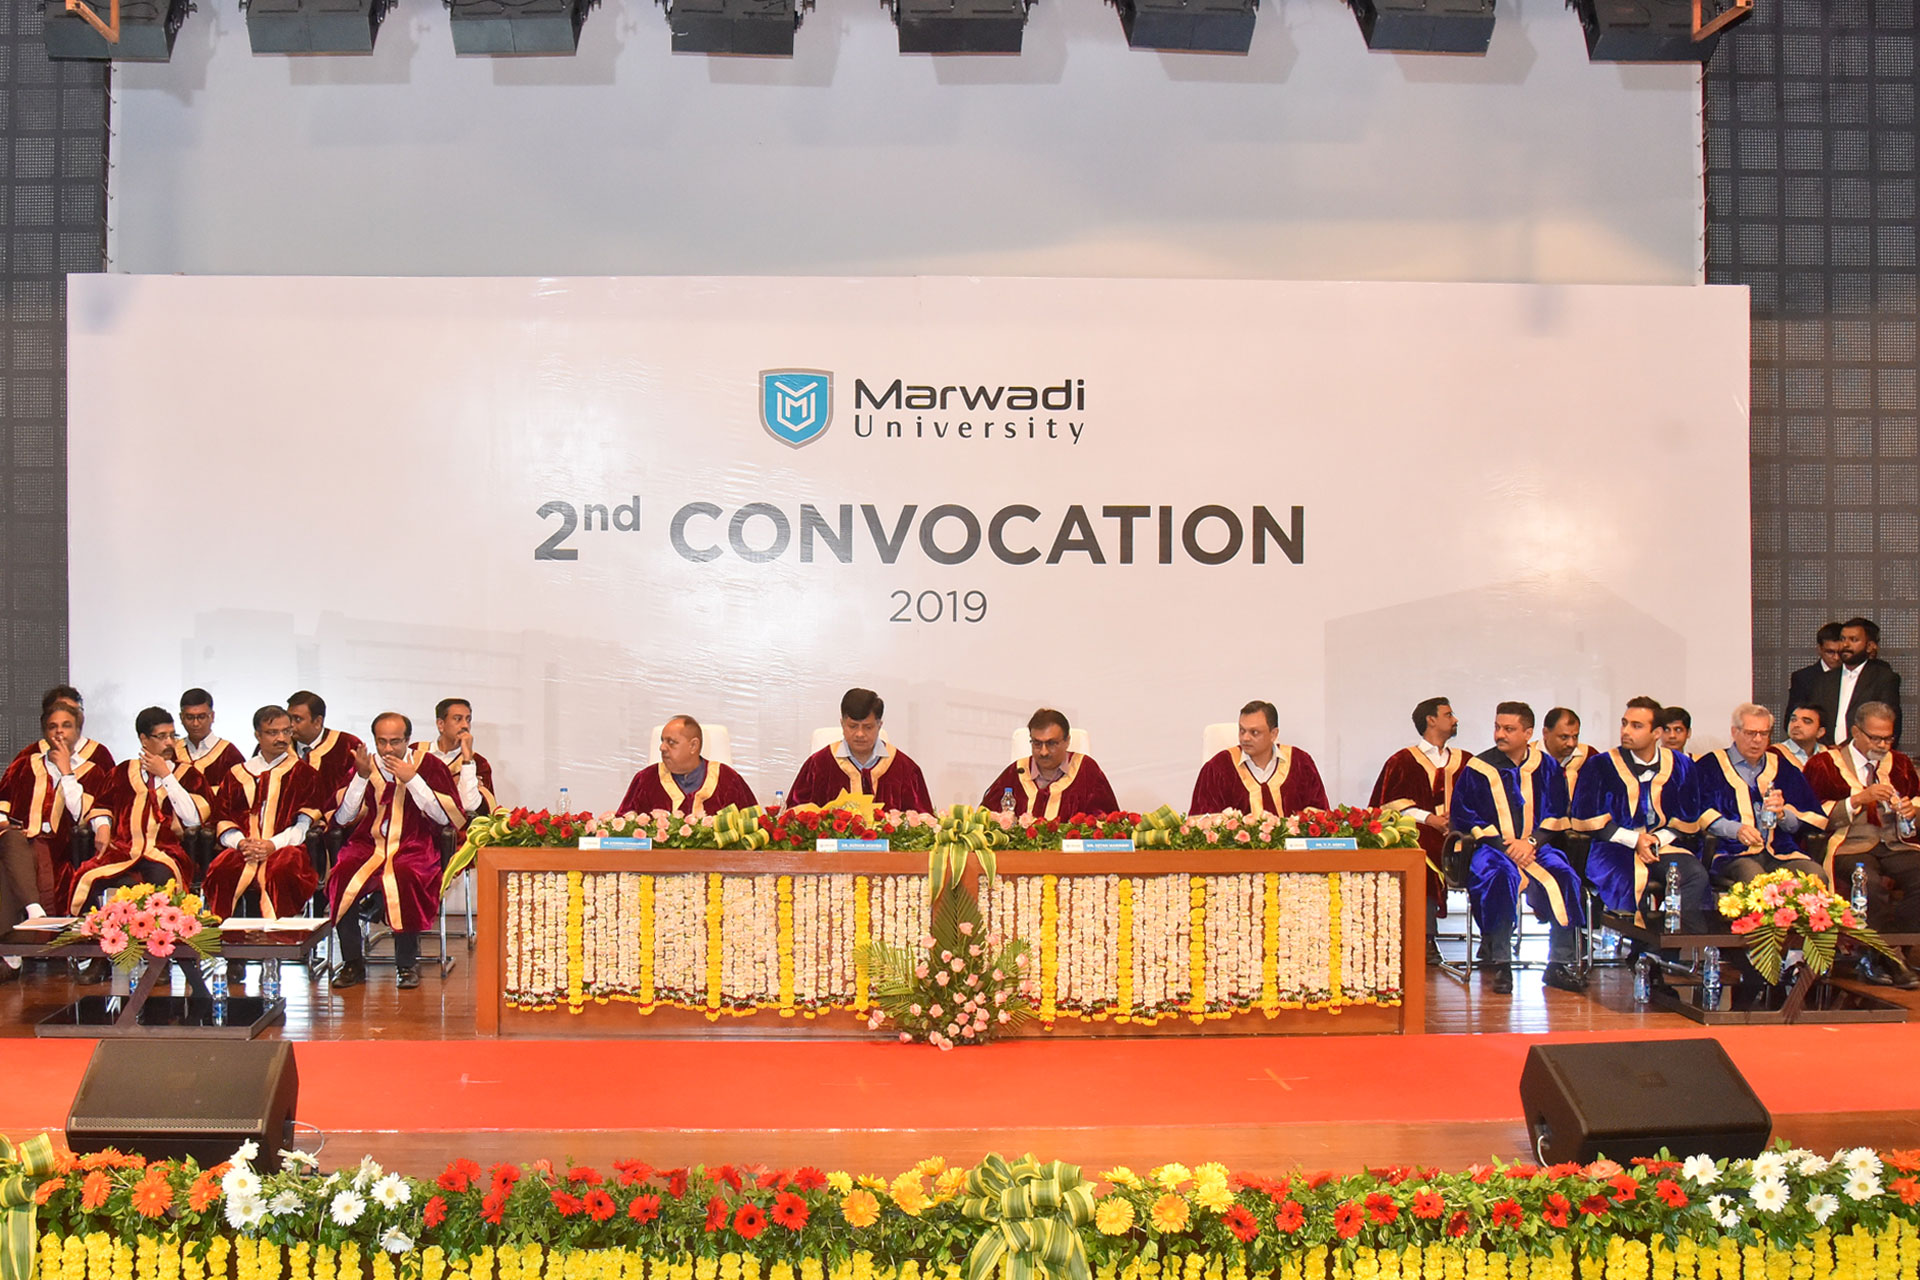 2ND CONVOCATION 2019